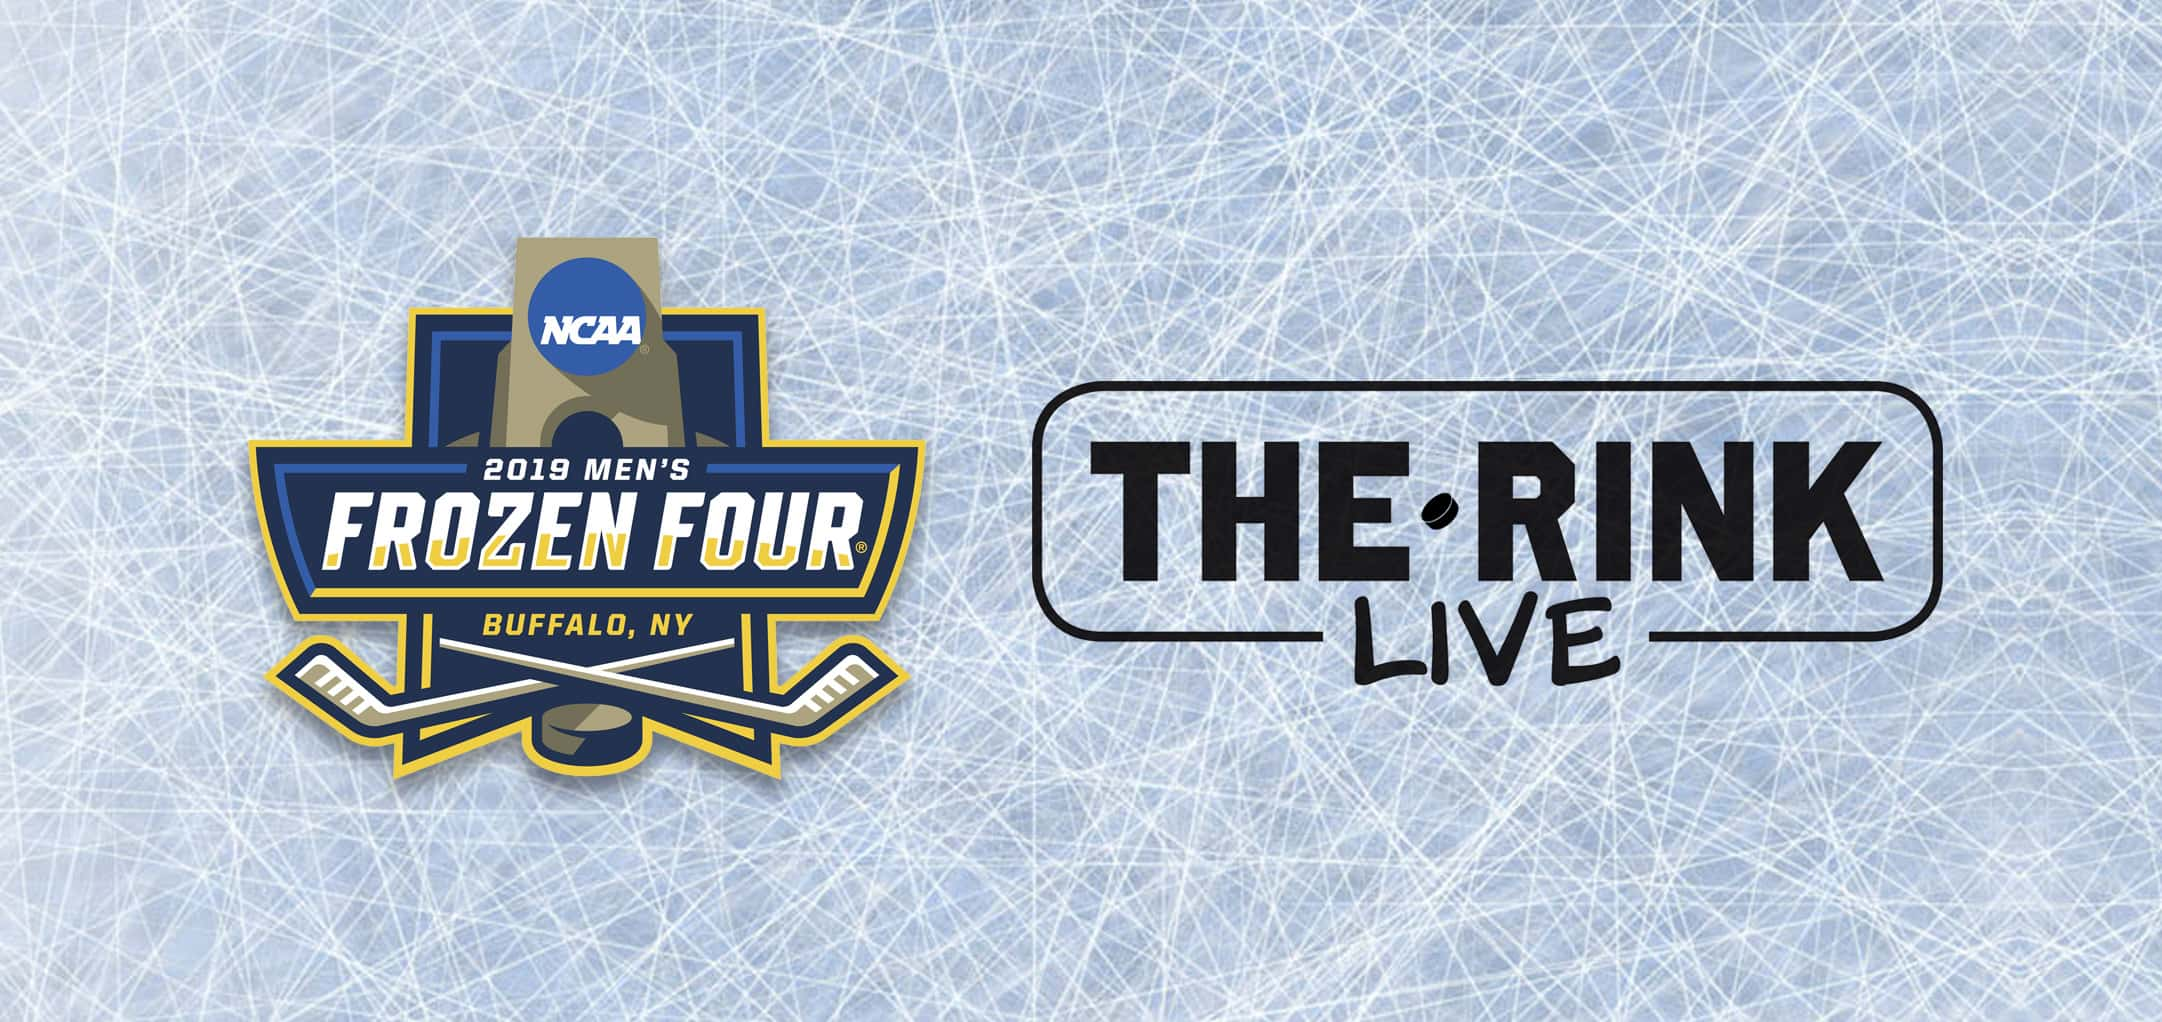 LIVE UPDATES: Game blog from 2019 Frozen Four championship game